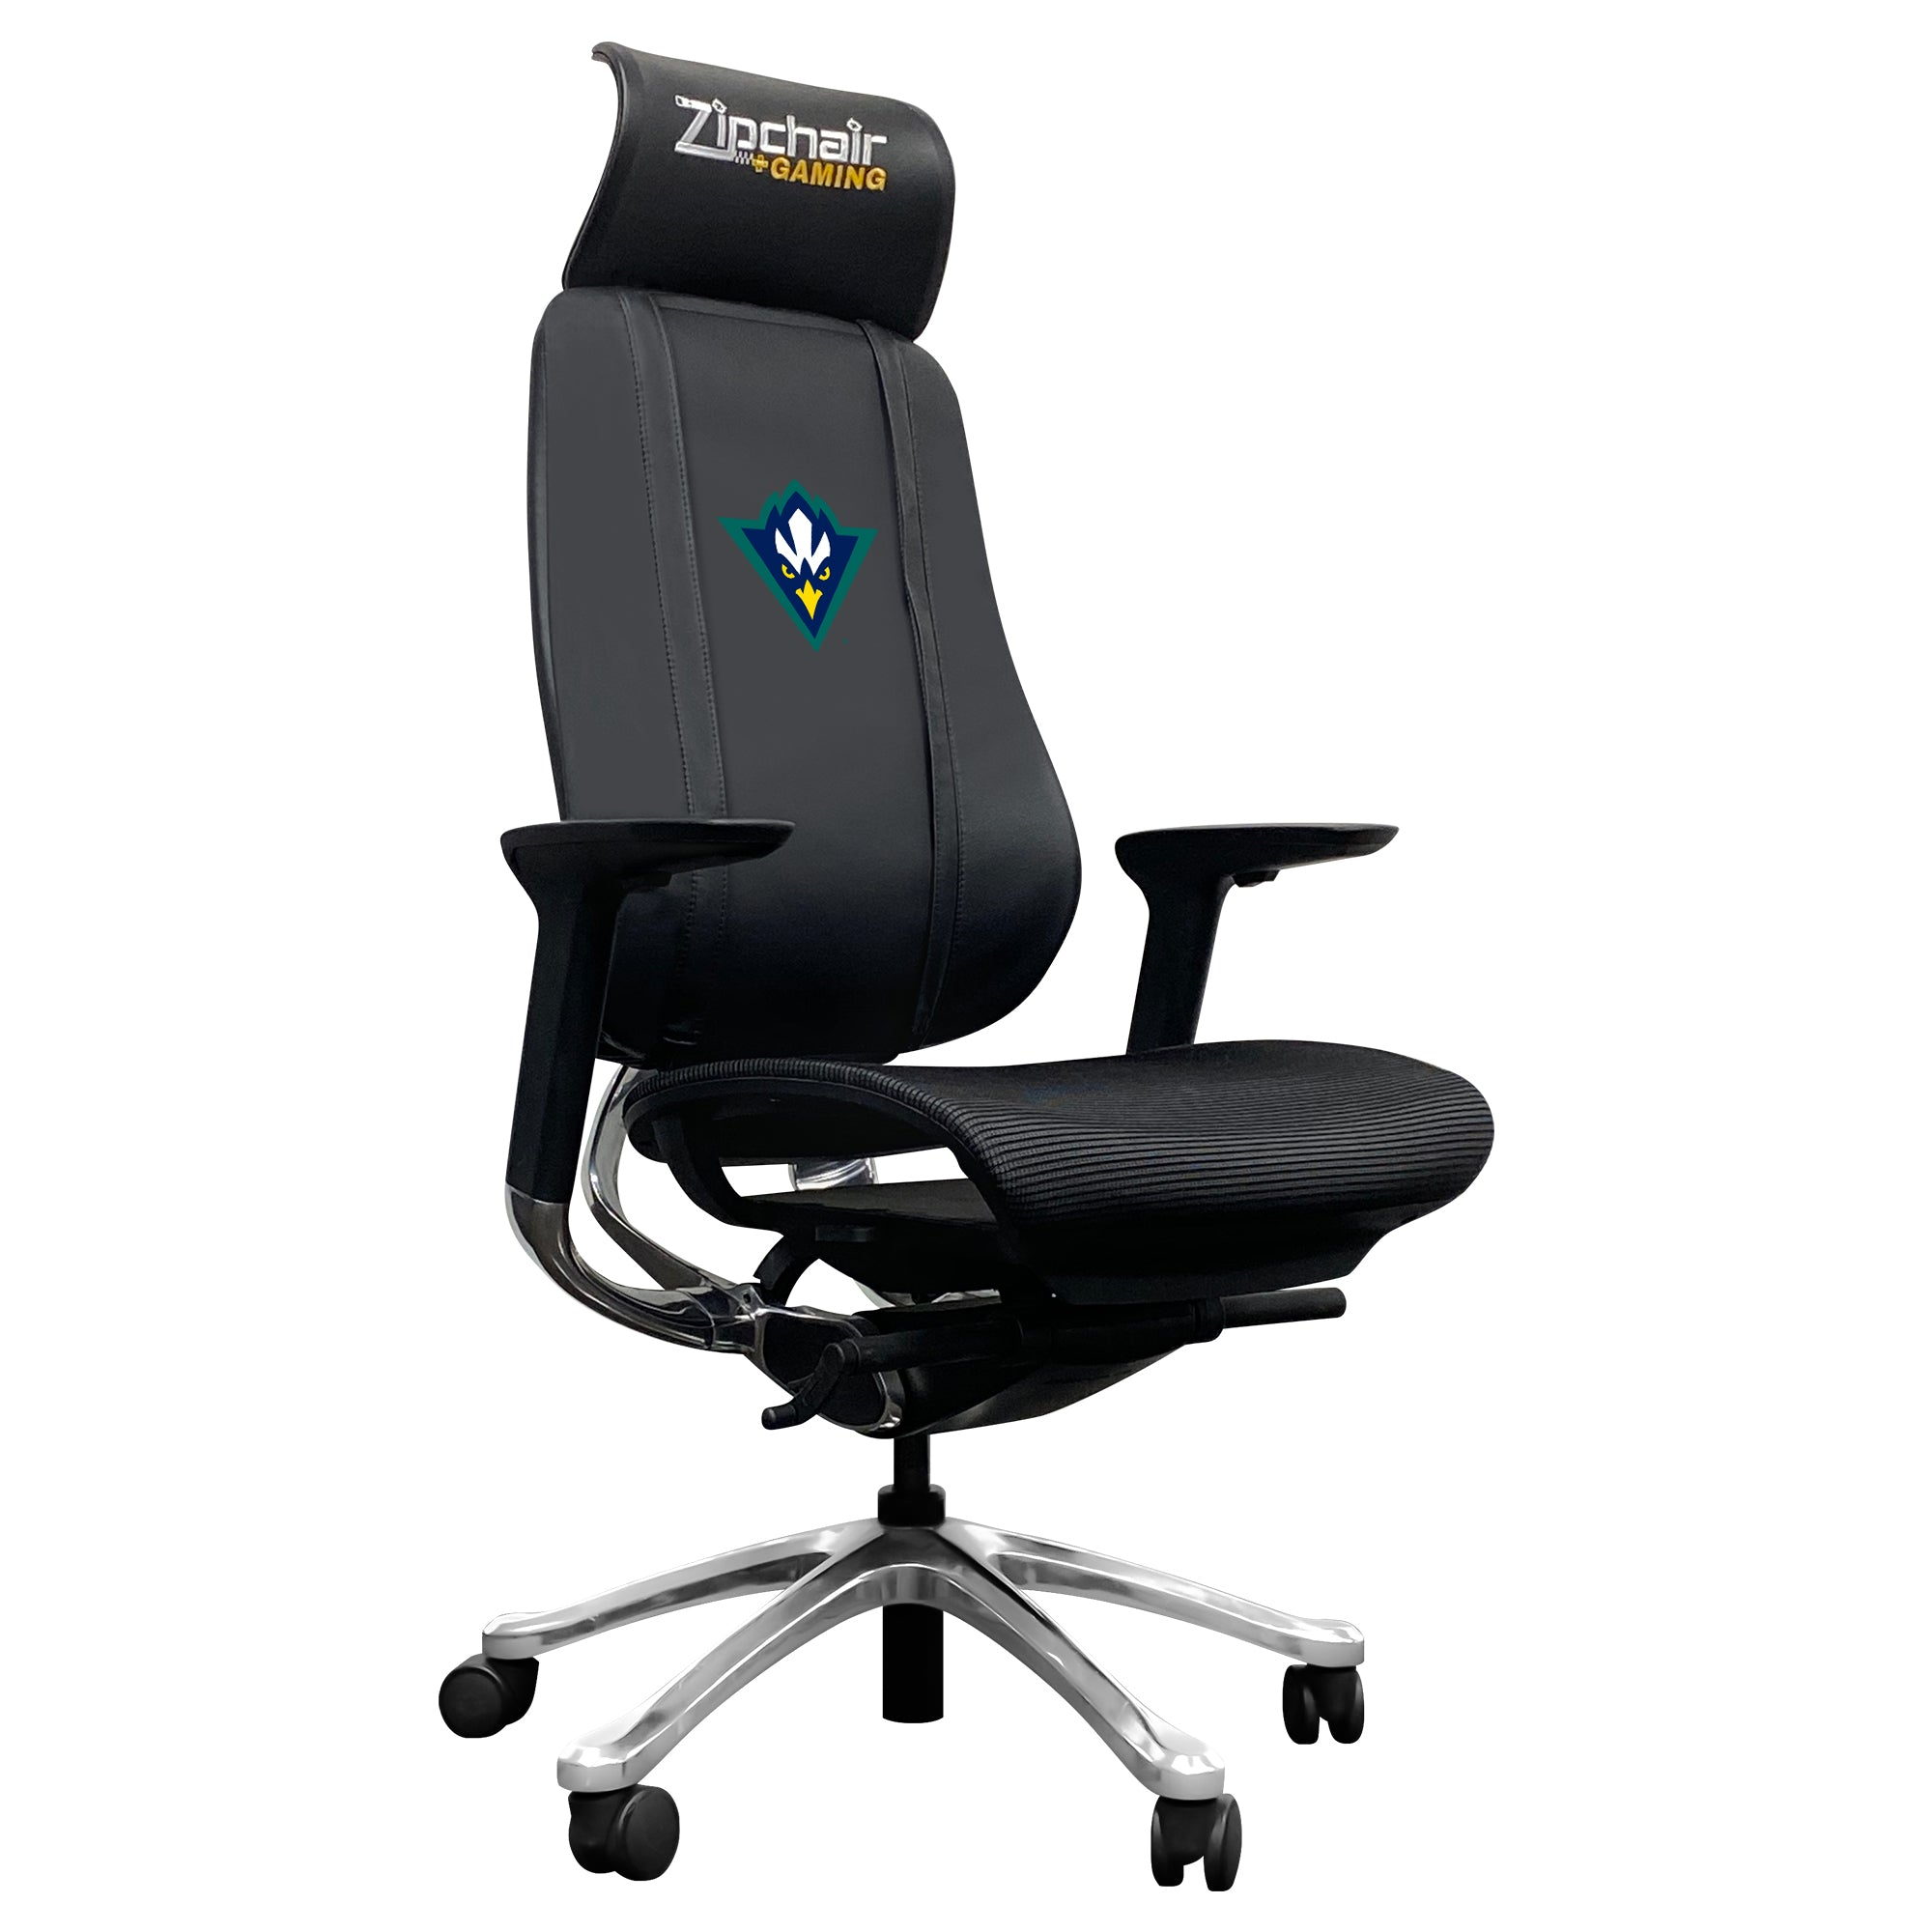 PhantomX Gaming Chair with UNC Wilmington Secondary Logo